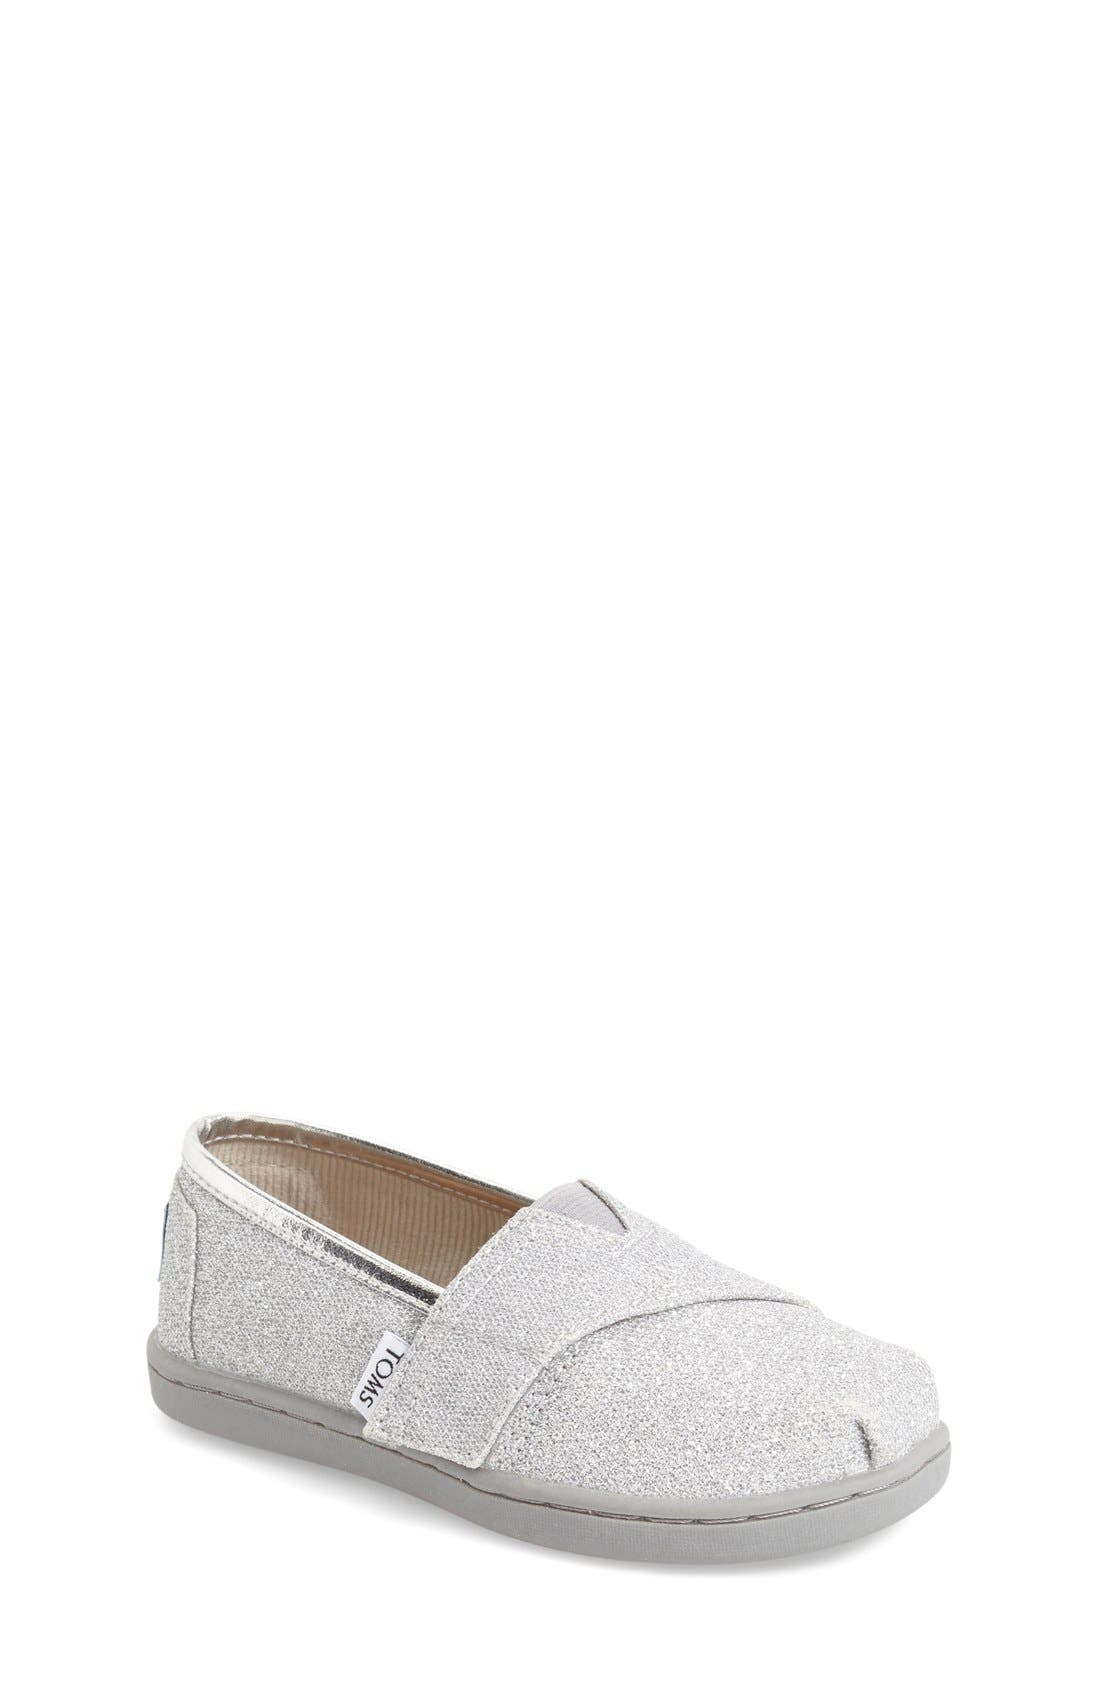 Alternate Image 1 Selected - TOMS 'Classic Tiny - Glimmer' Slip-On (Baby, Walker & Toddler)